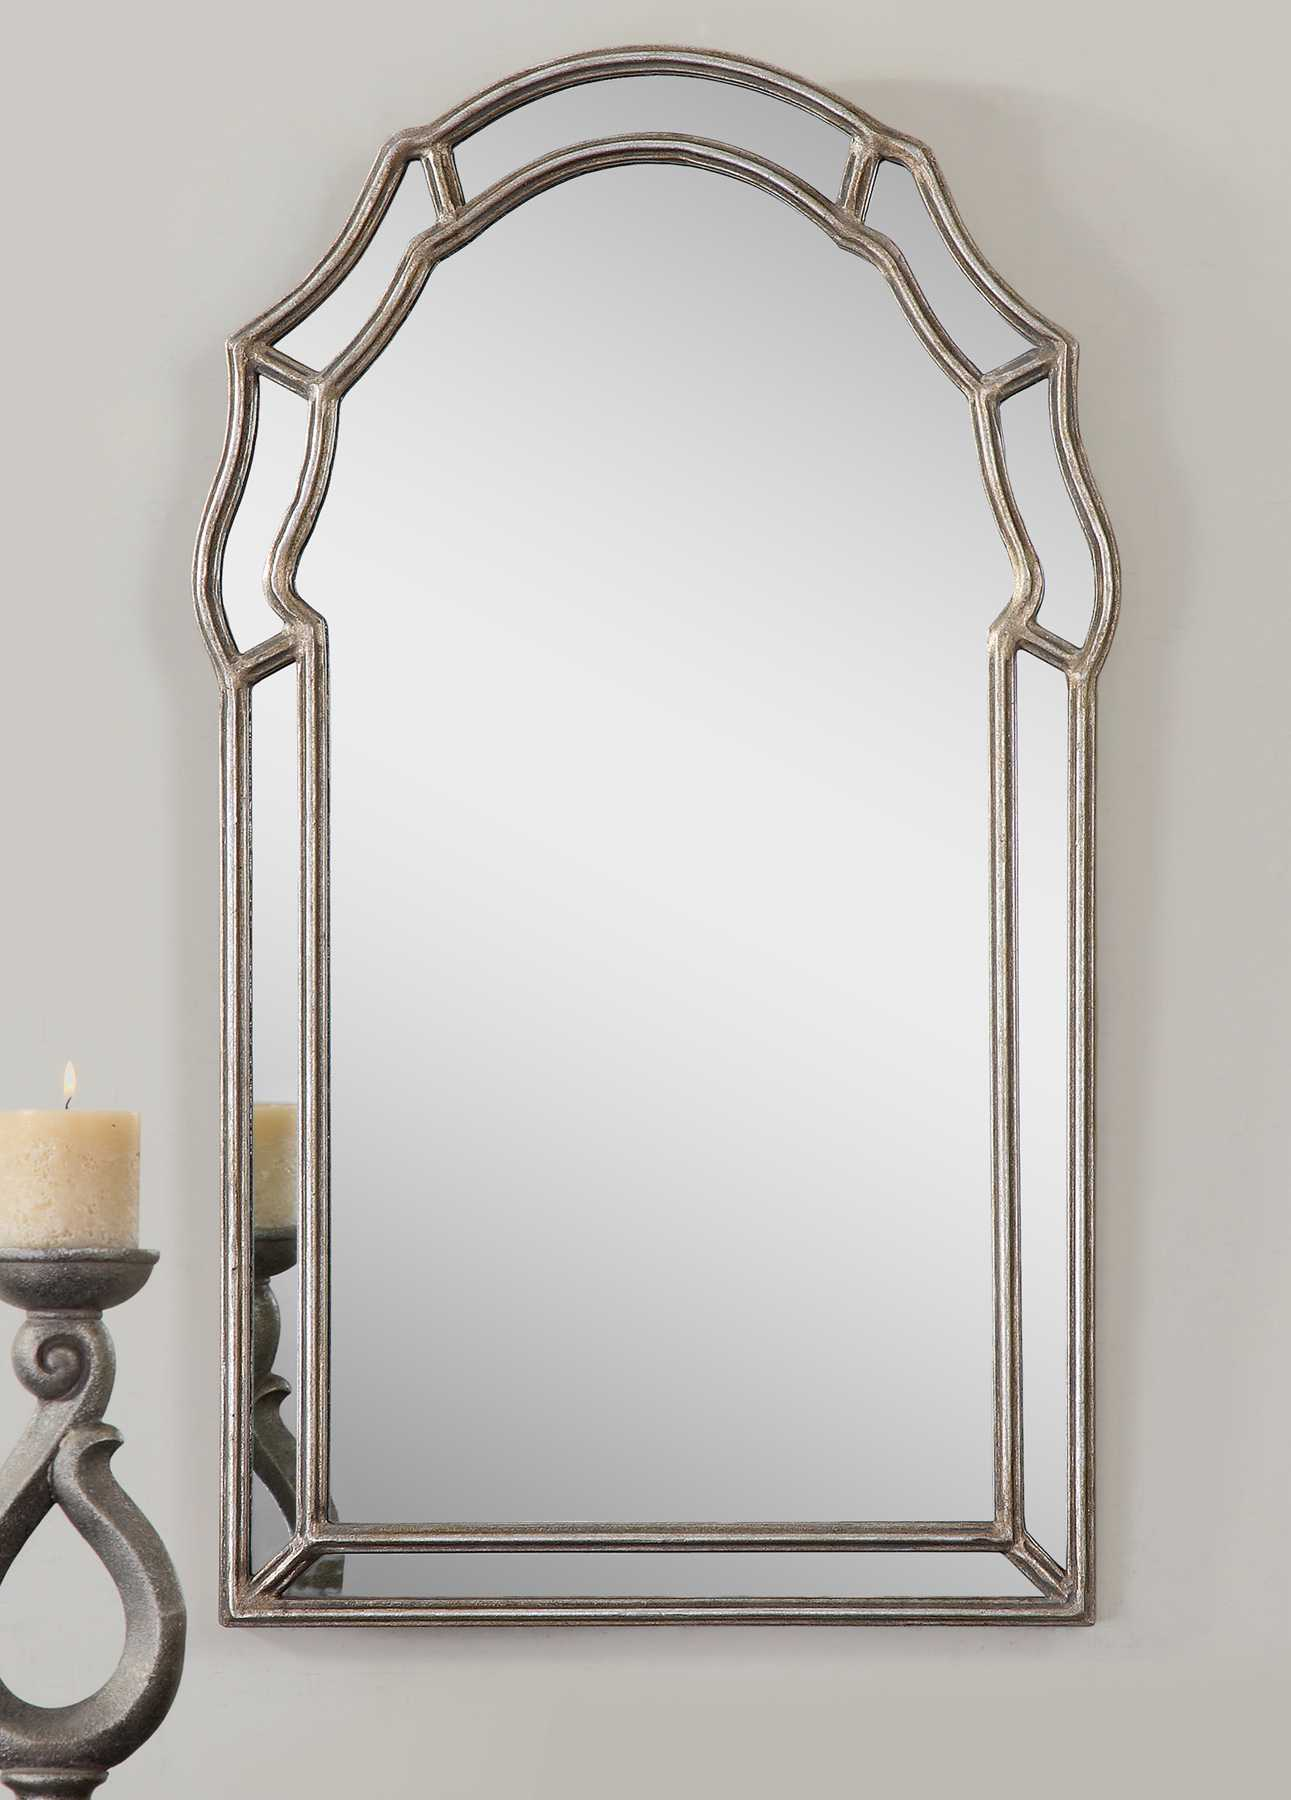 Uttermost Petrizzi 21 X 35 Decorative Arched Wall Mirror